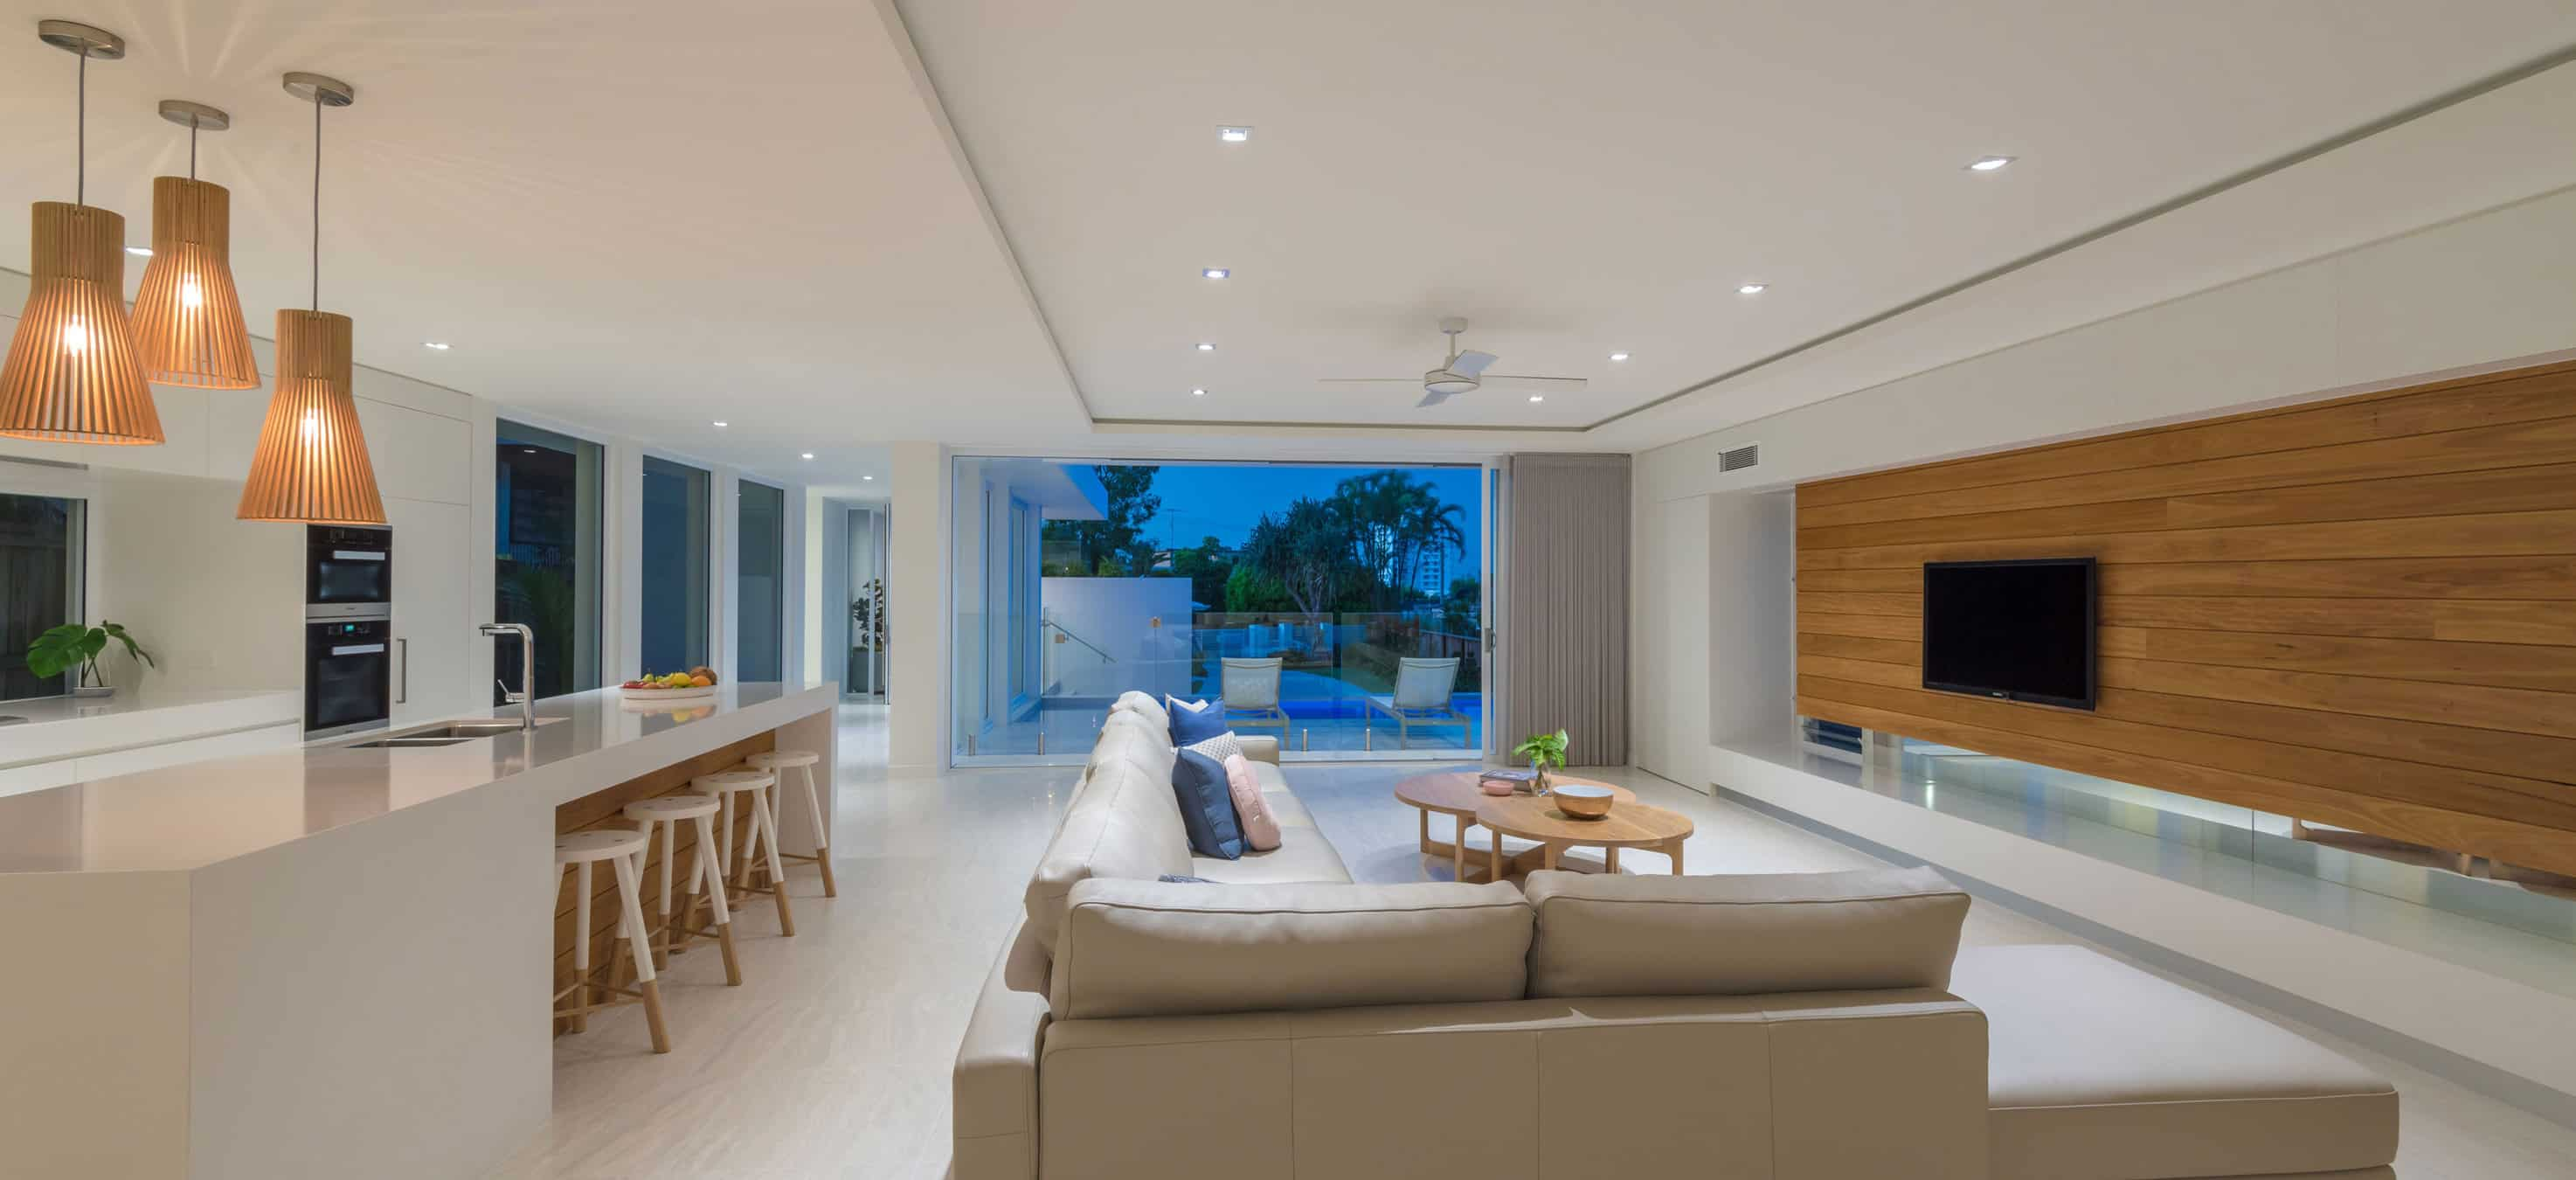 Queensland Building Design Awards 2016 Winner Residential Alterations And Additions Over 600 000 Construction Cost